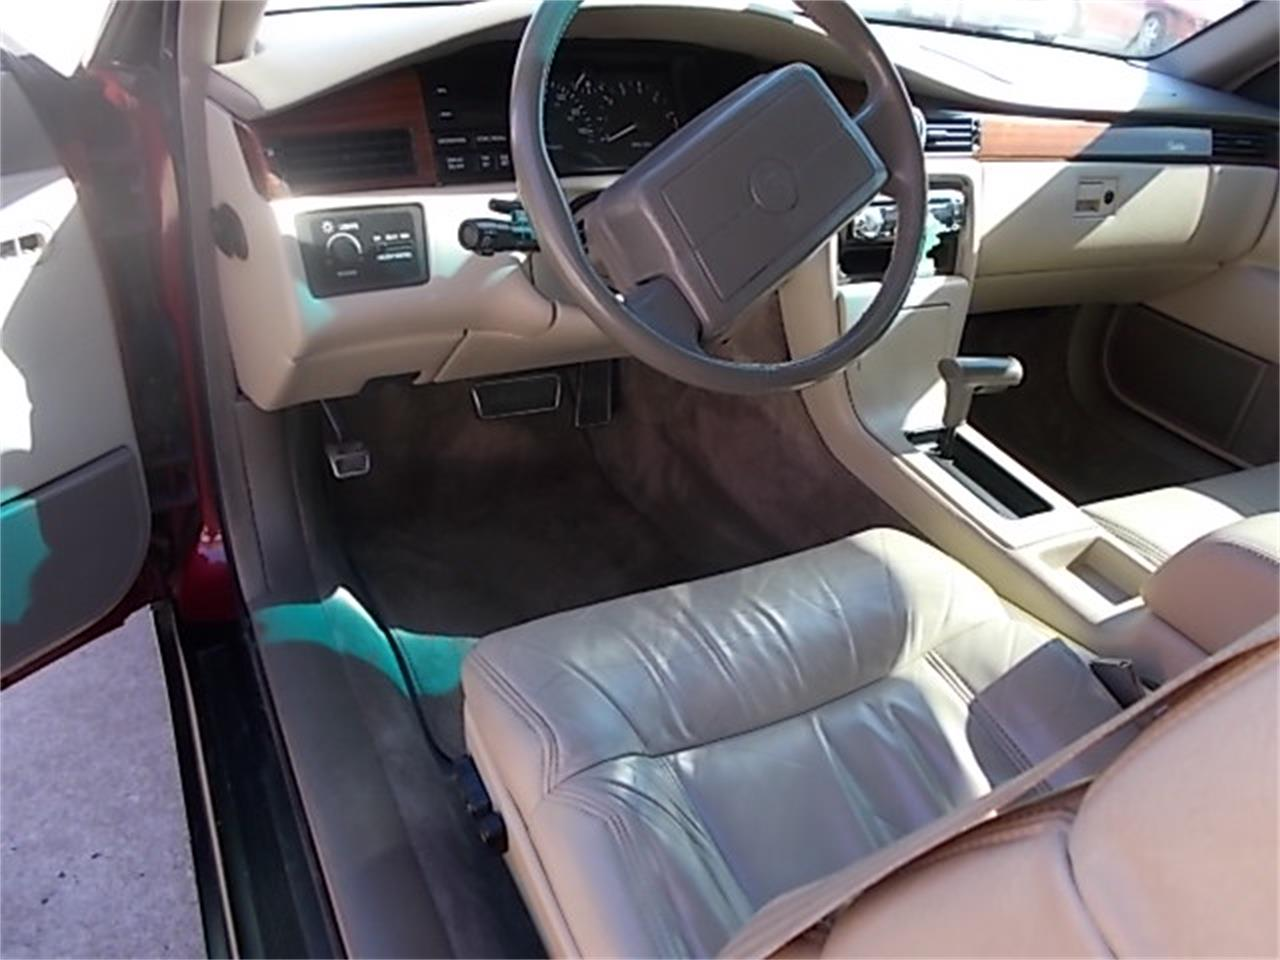 1993 Cadillac Eldorado (CC-1199112) for sale in Skiatook, Oklahoma